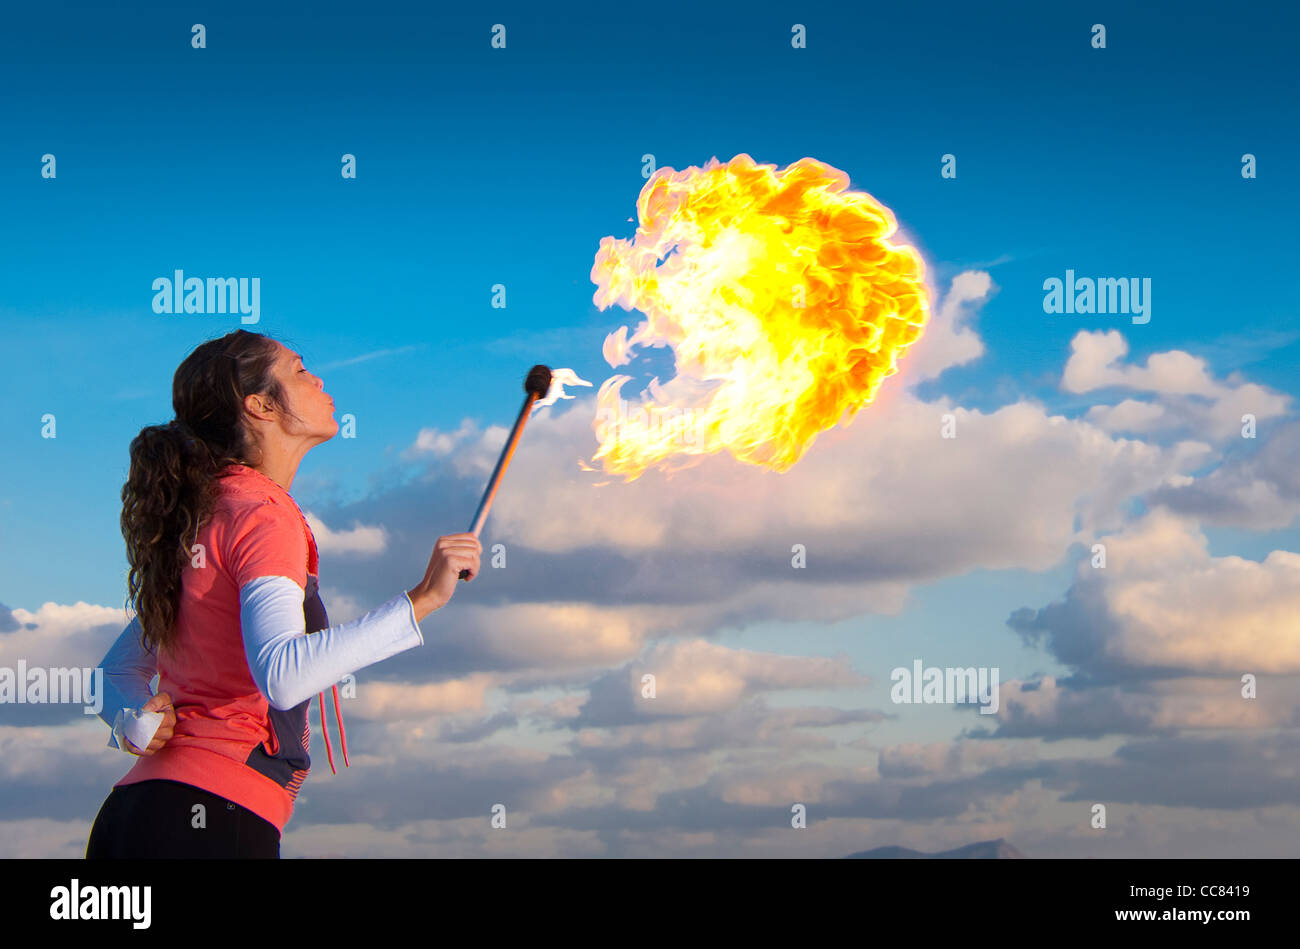 Female fire breather performing at dusk. - Stock Image